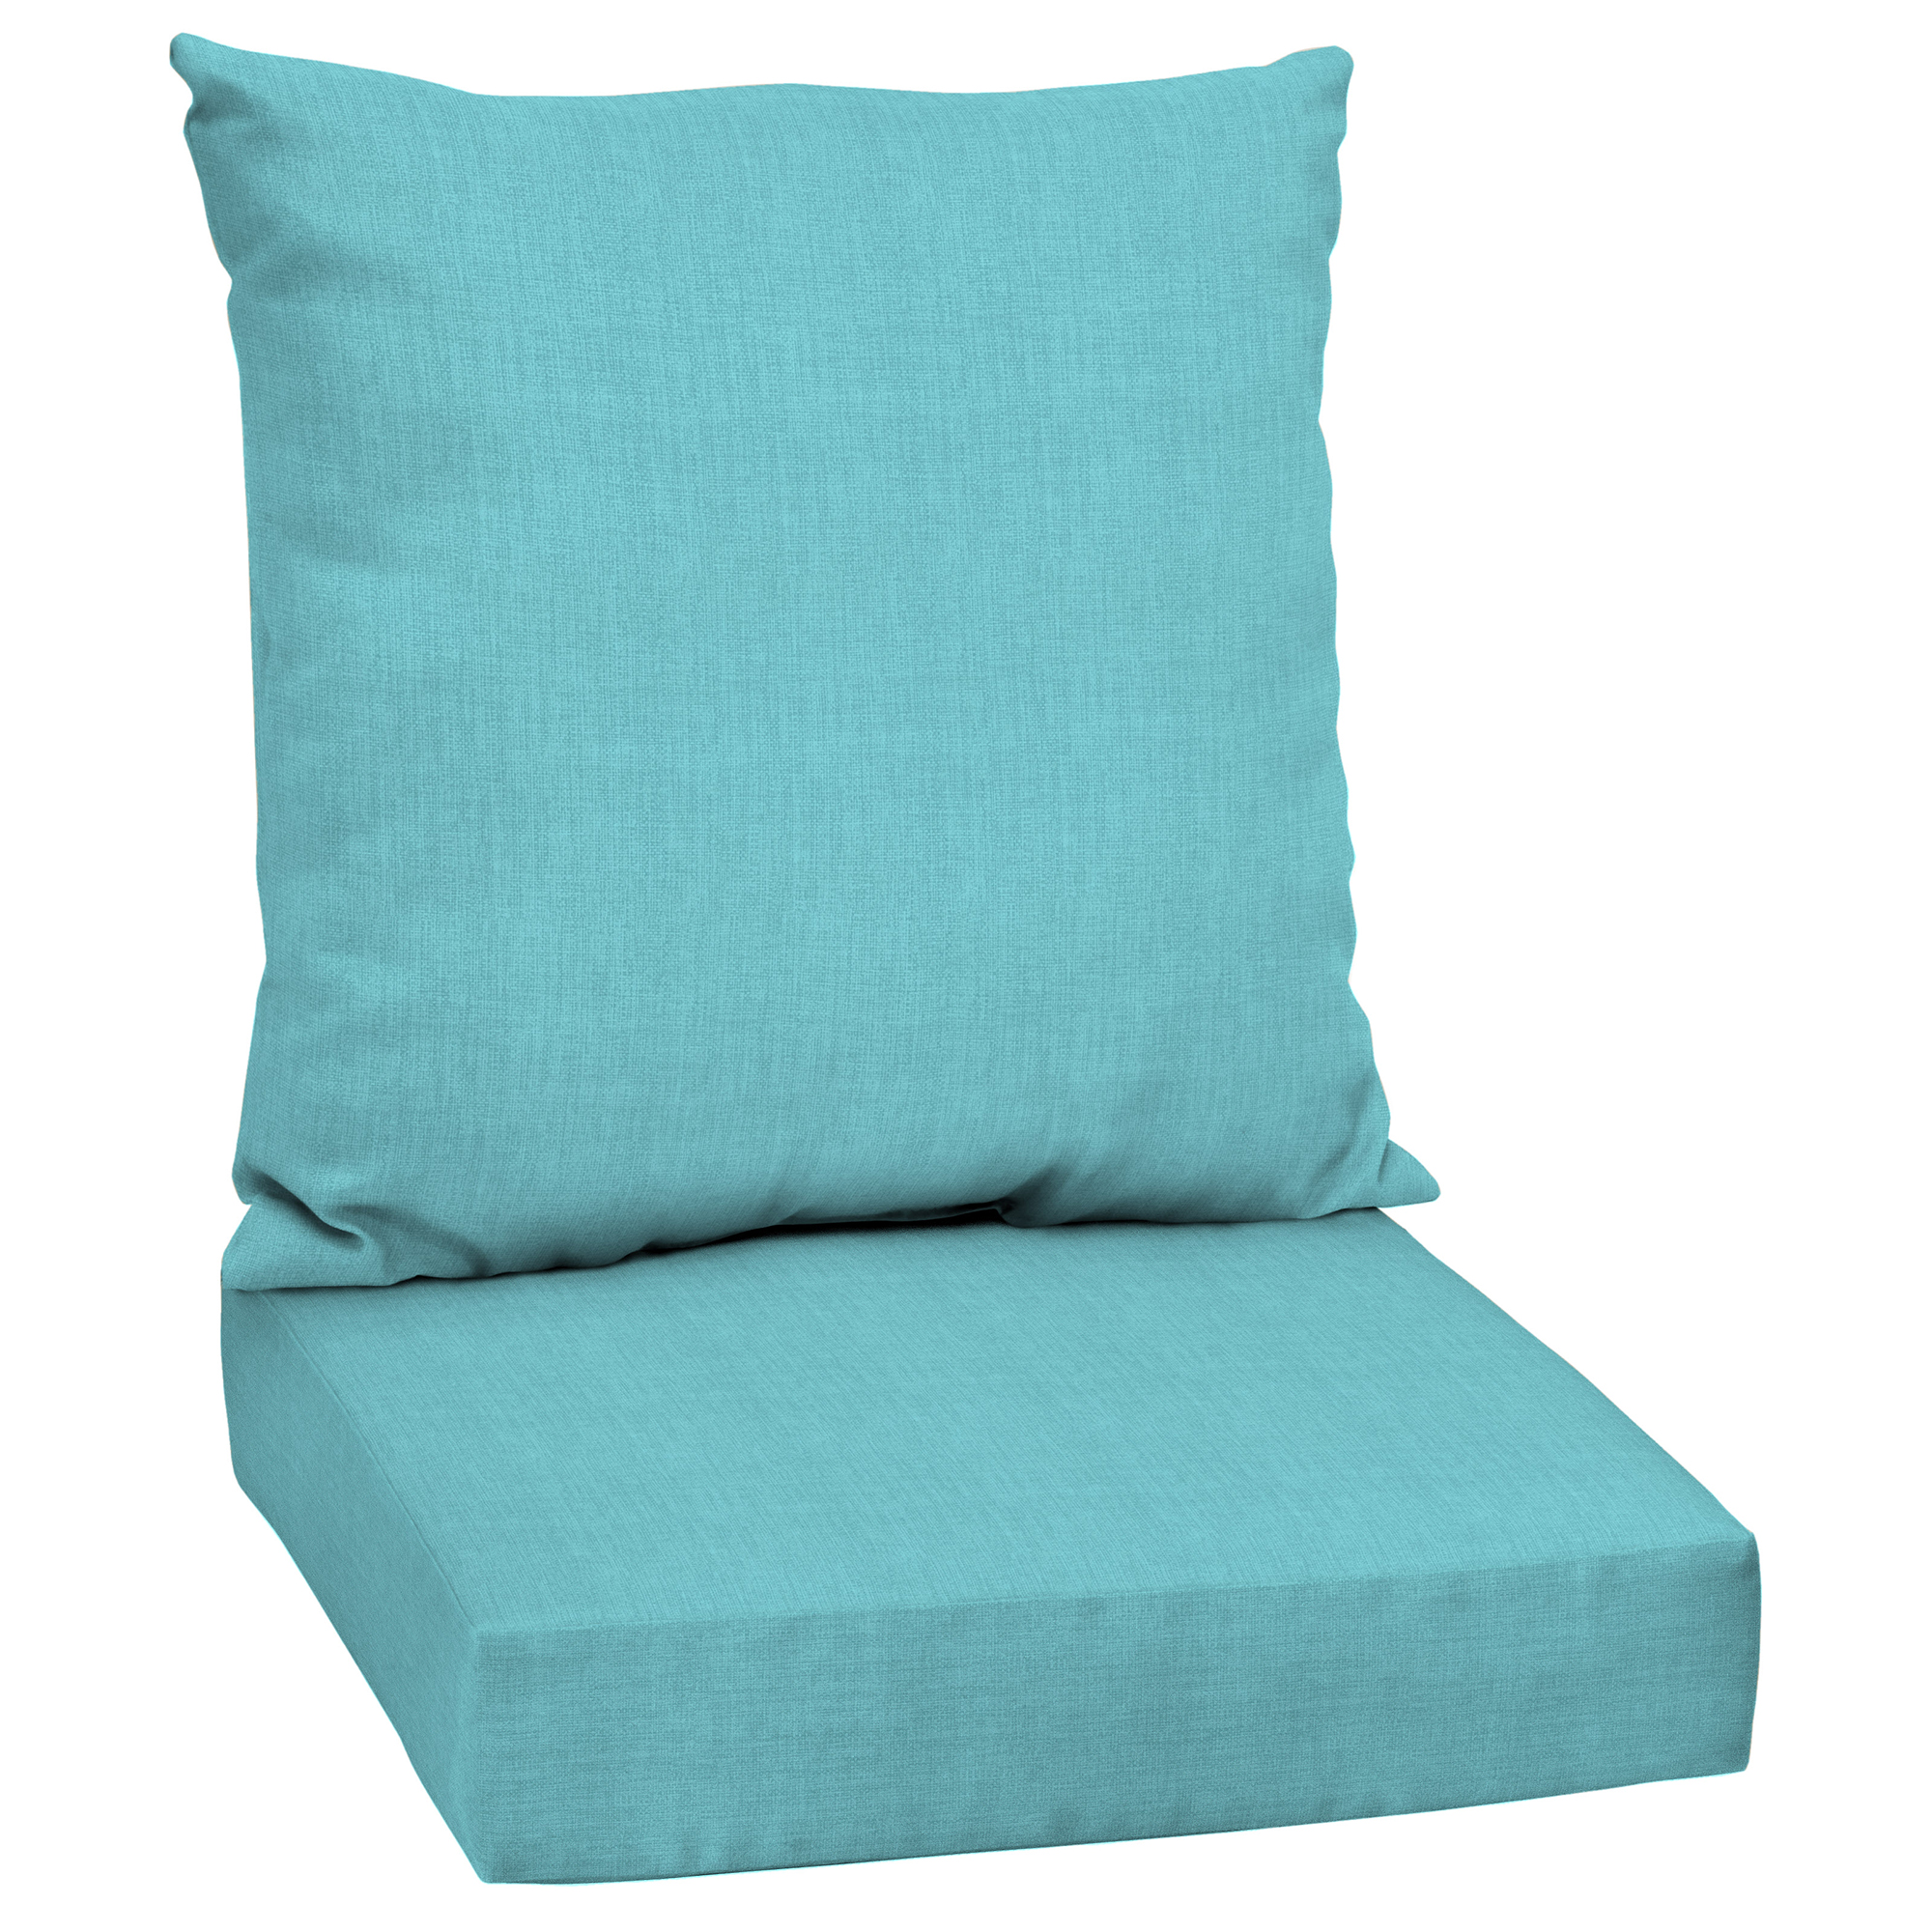 Delicieux Product Image Mainstays Solid Turquoise 48 X 24 In. Outdoor Deep Seating  Cushion Set